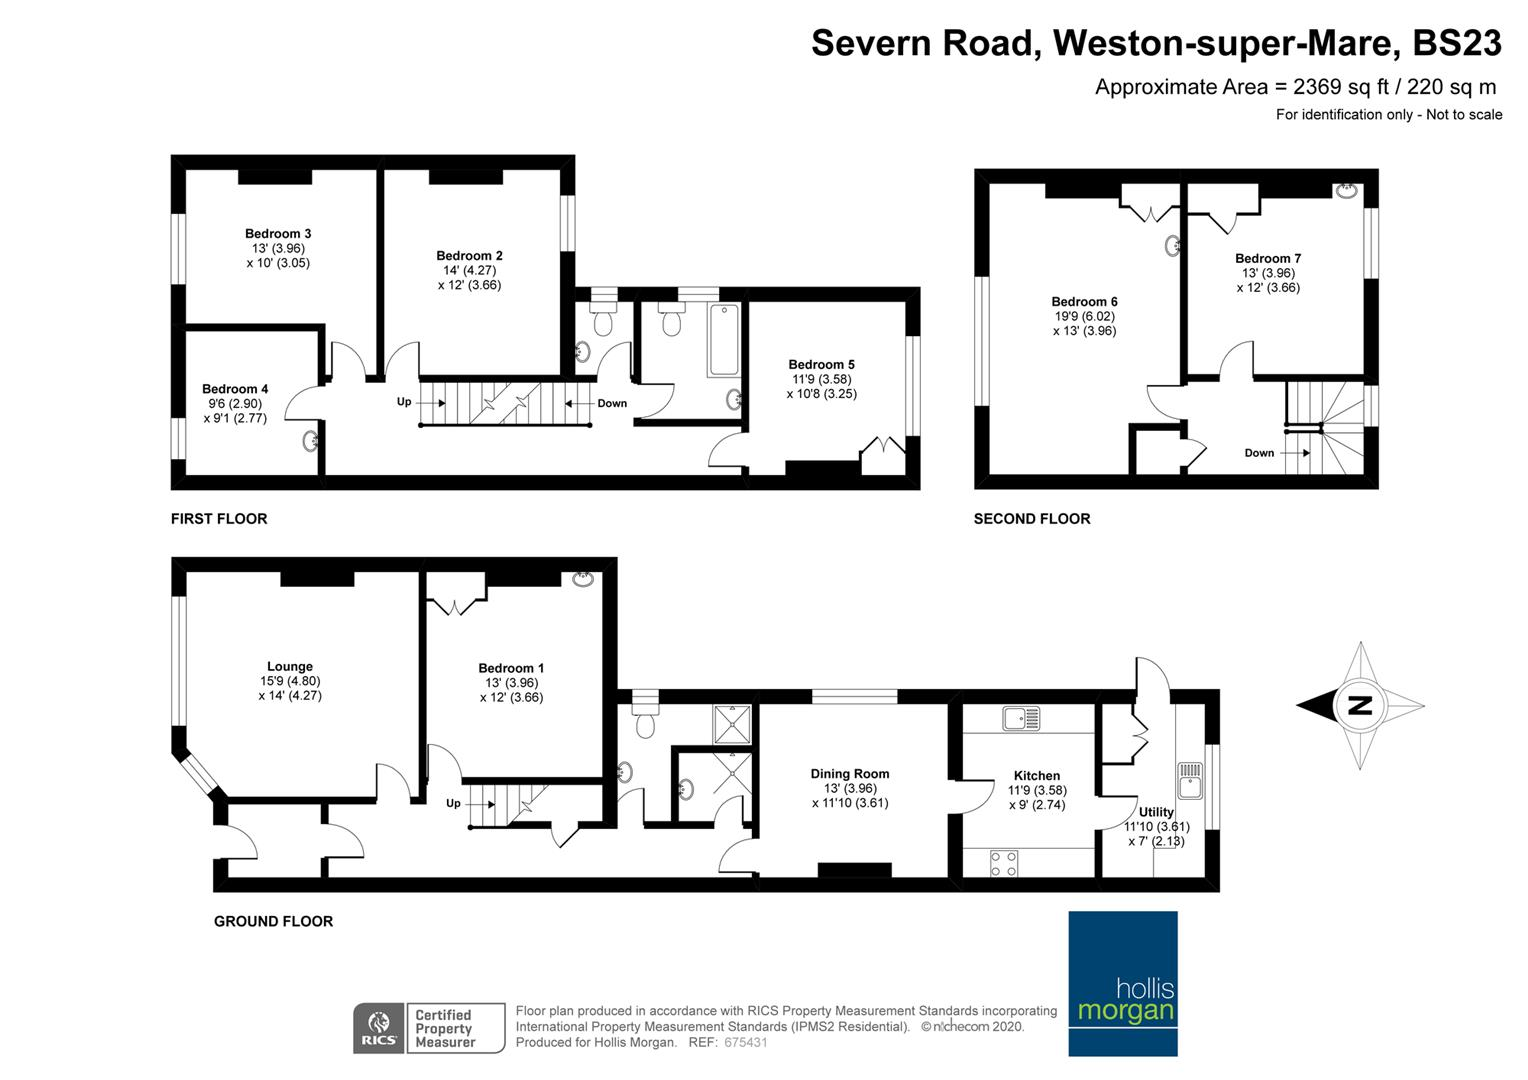 Floorplans For 7 BED PERIOD PROPERTY - WSM